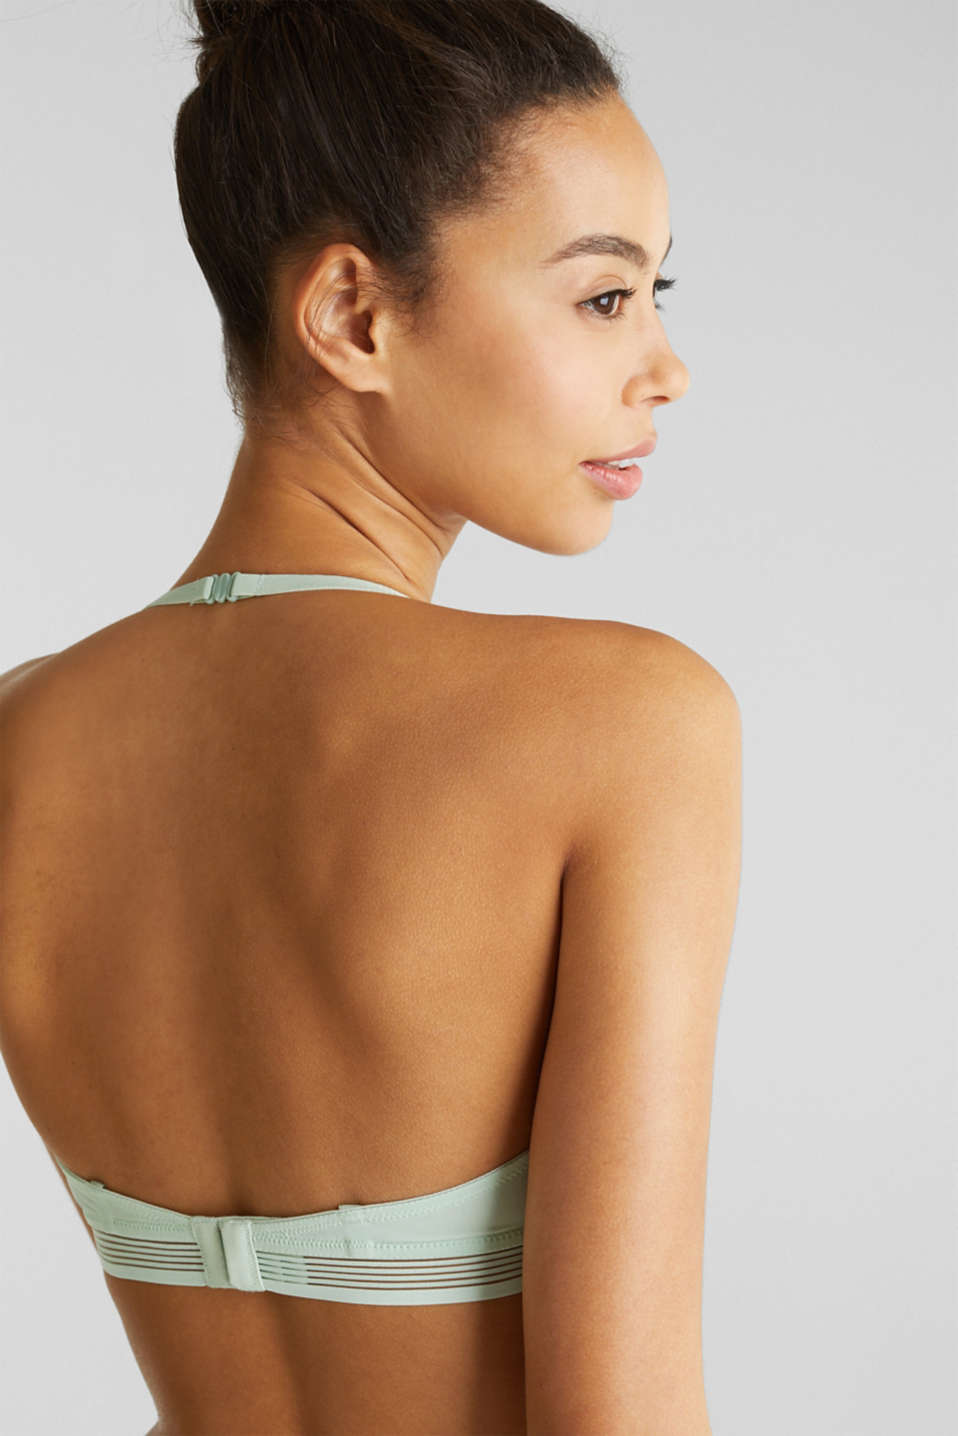 Unpadded underwire bra with sheer stripes, LIGHT AQUA GREEN, detail image number 3